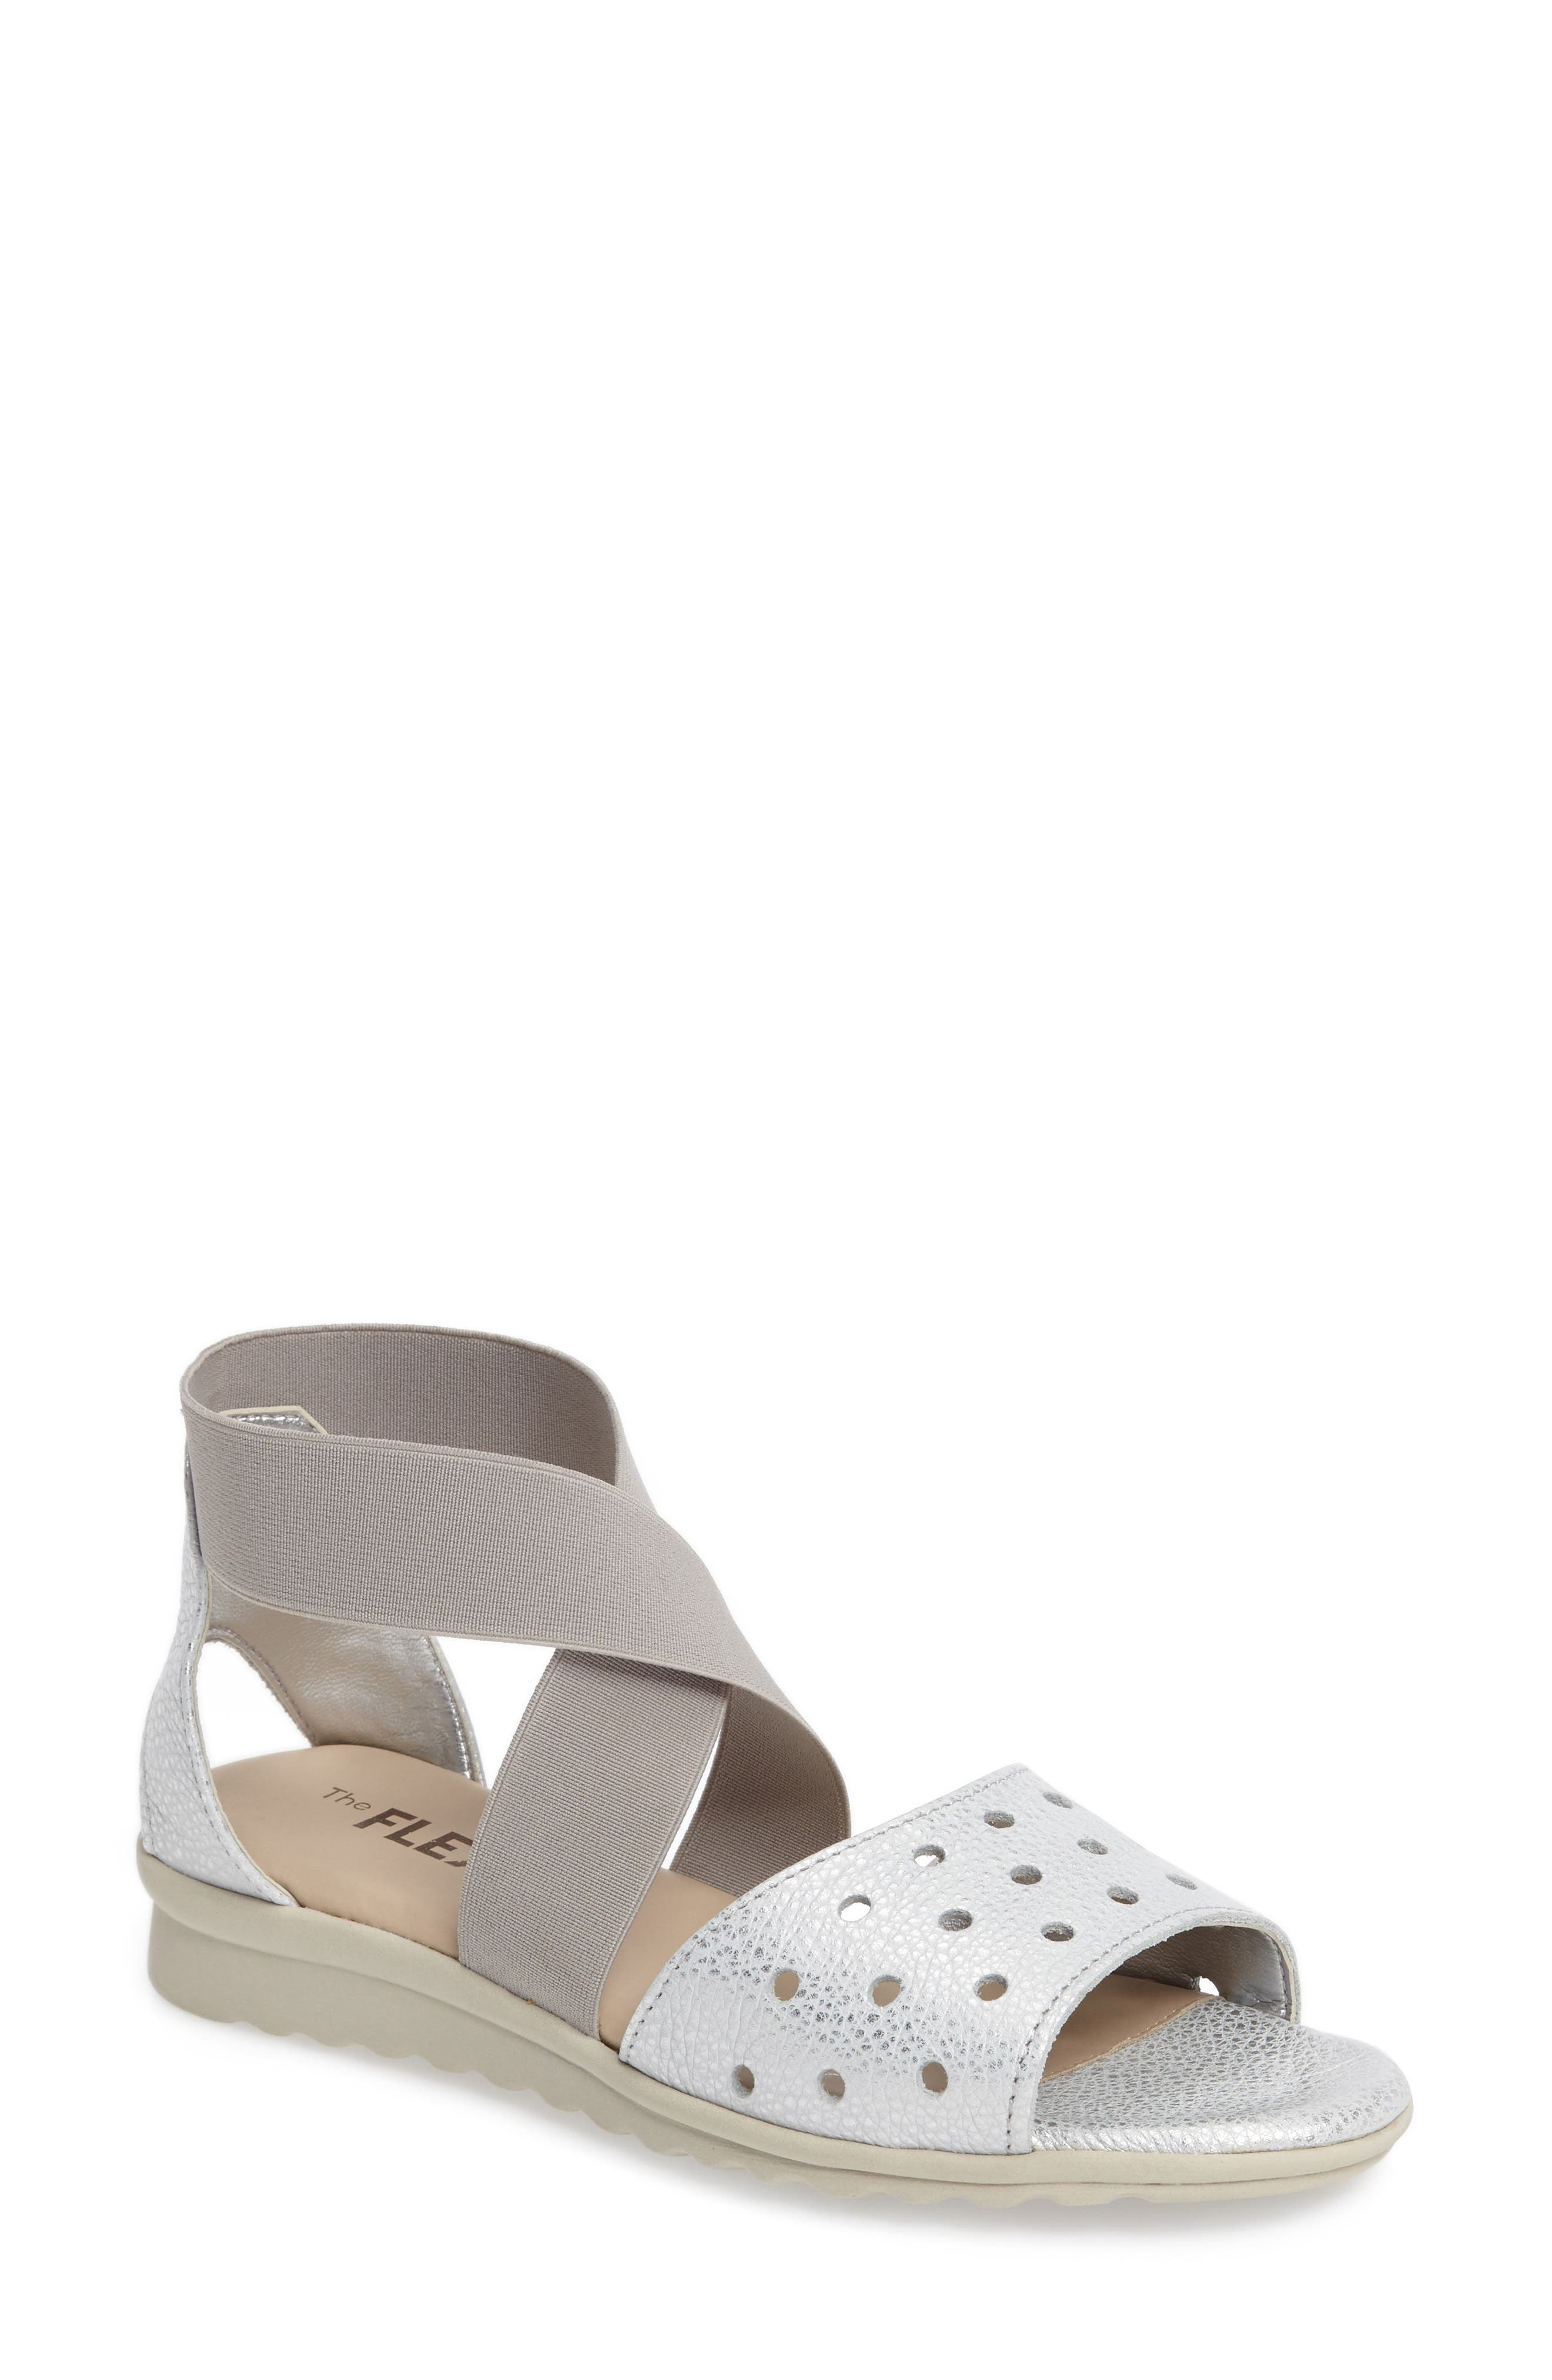 Fan Fair Sandal,                         Main,                         color, Silver Leather